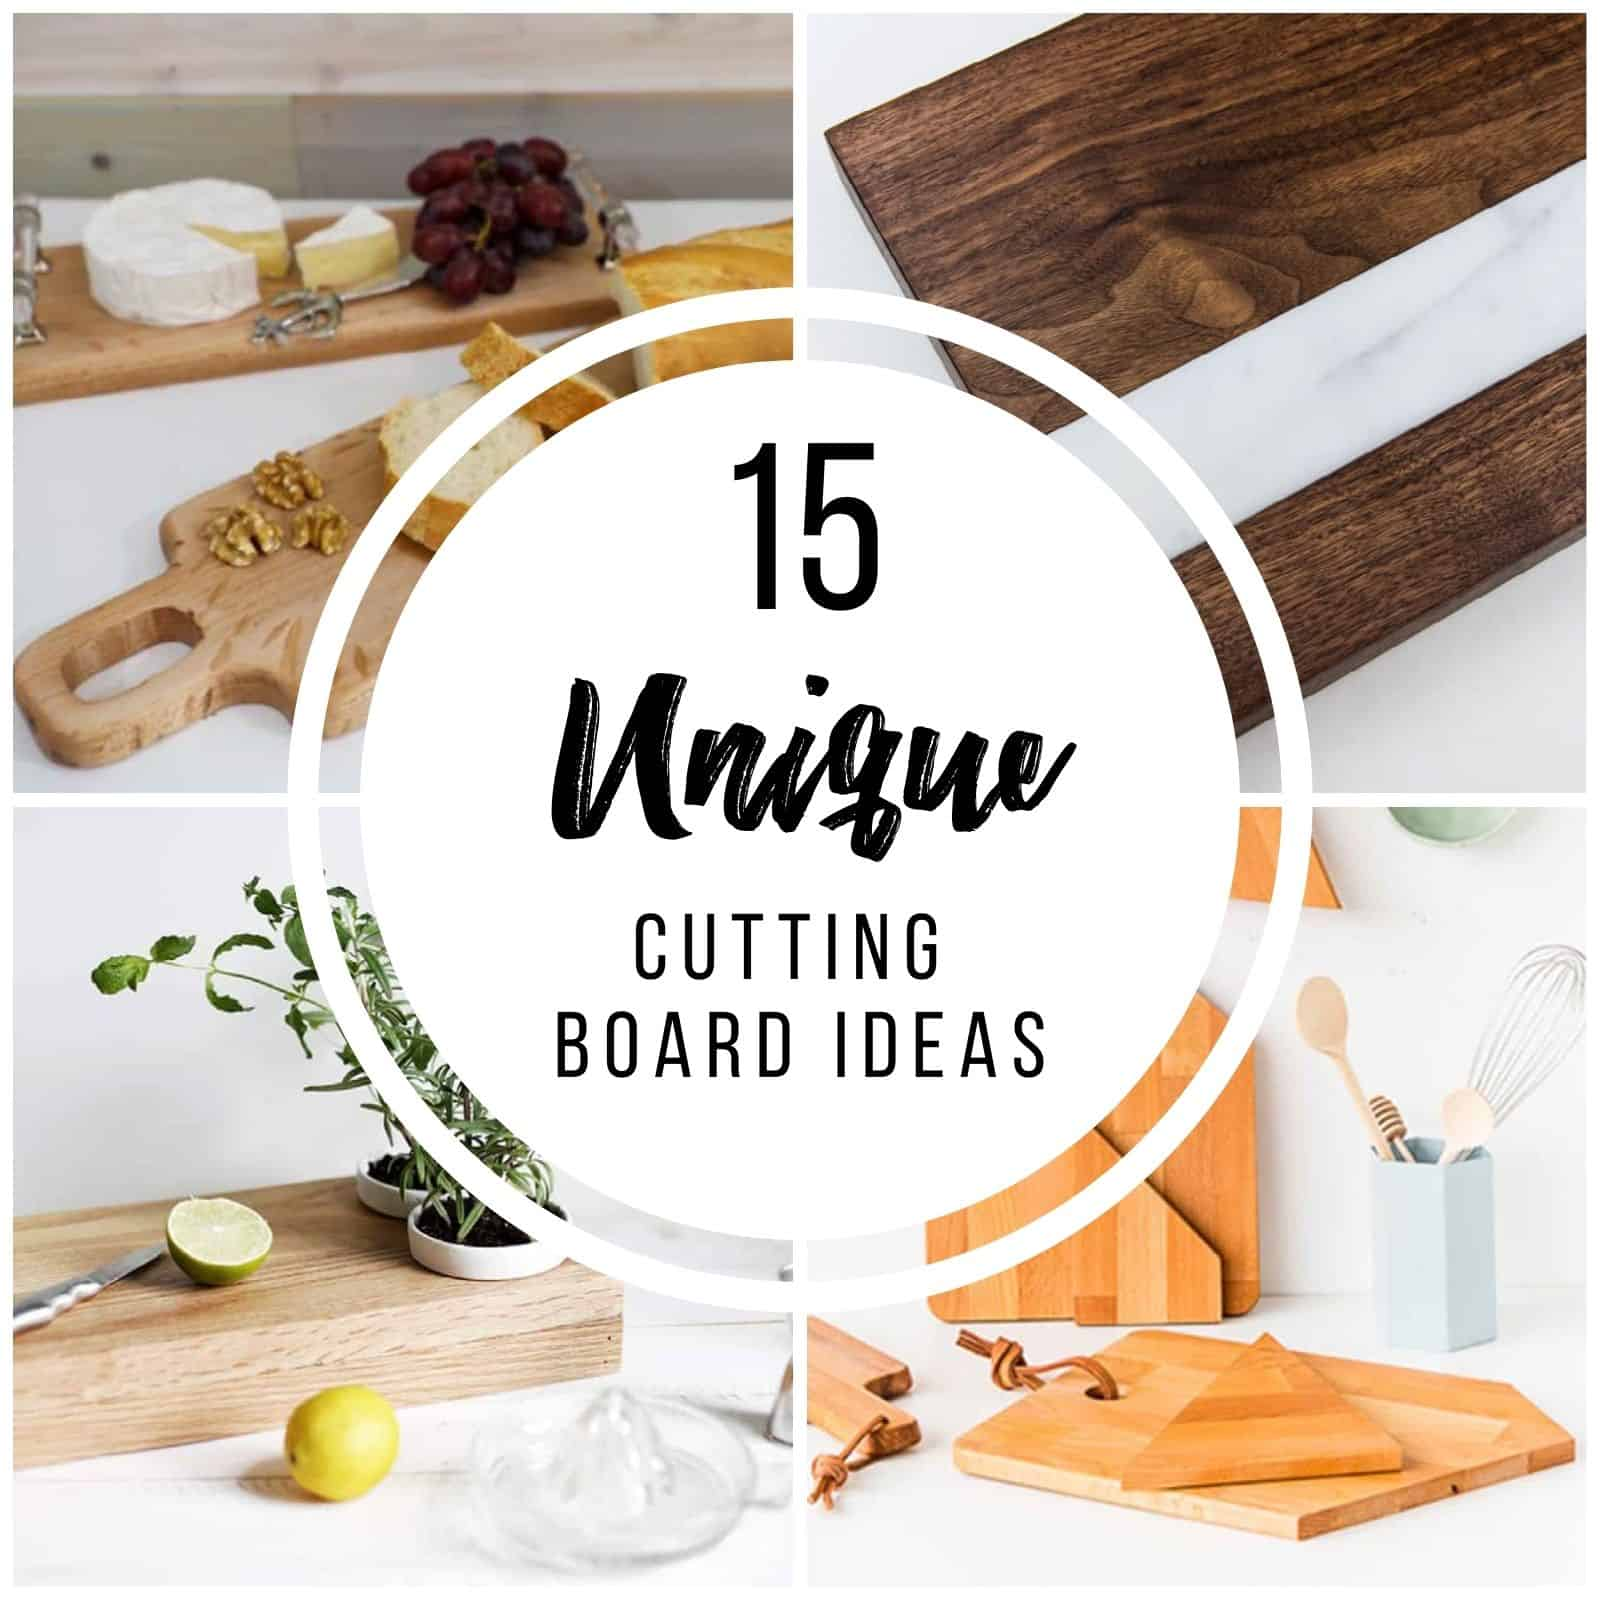 collage of cutting boards with text overlay reading 15 Unique Cutting Board Ideas